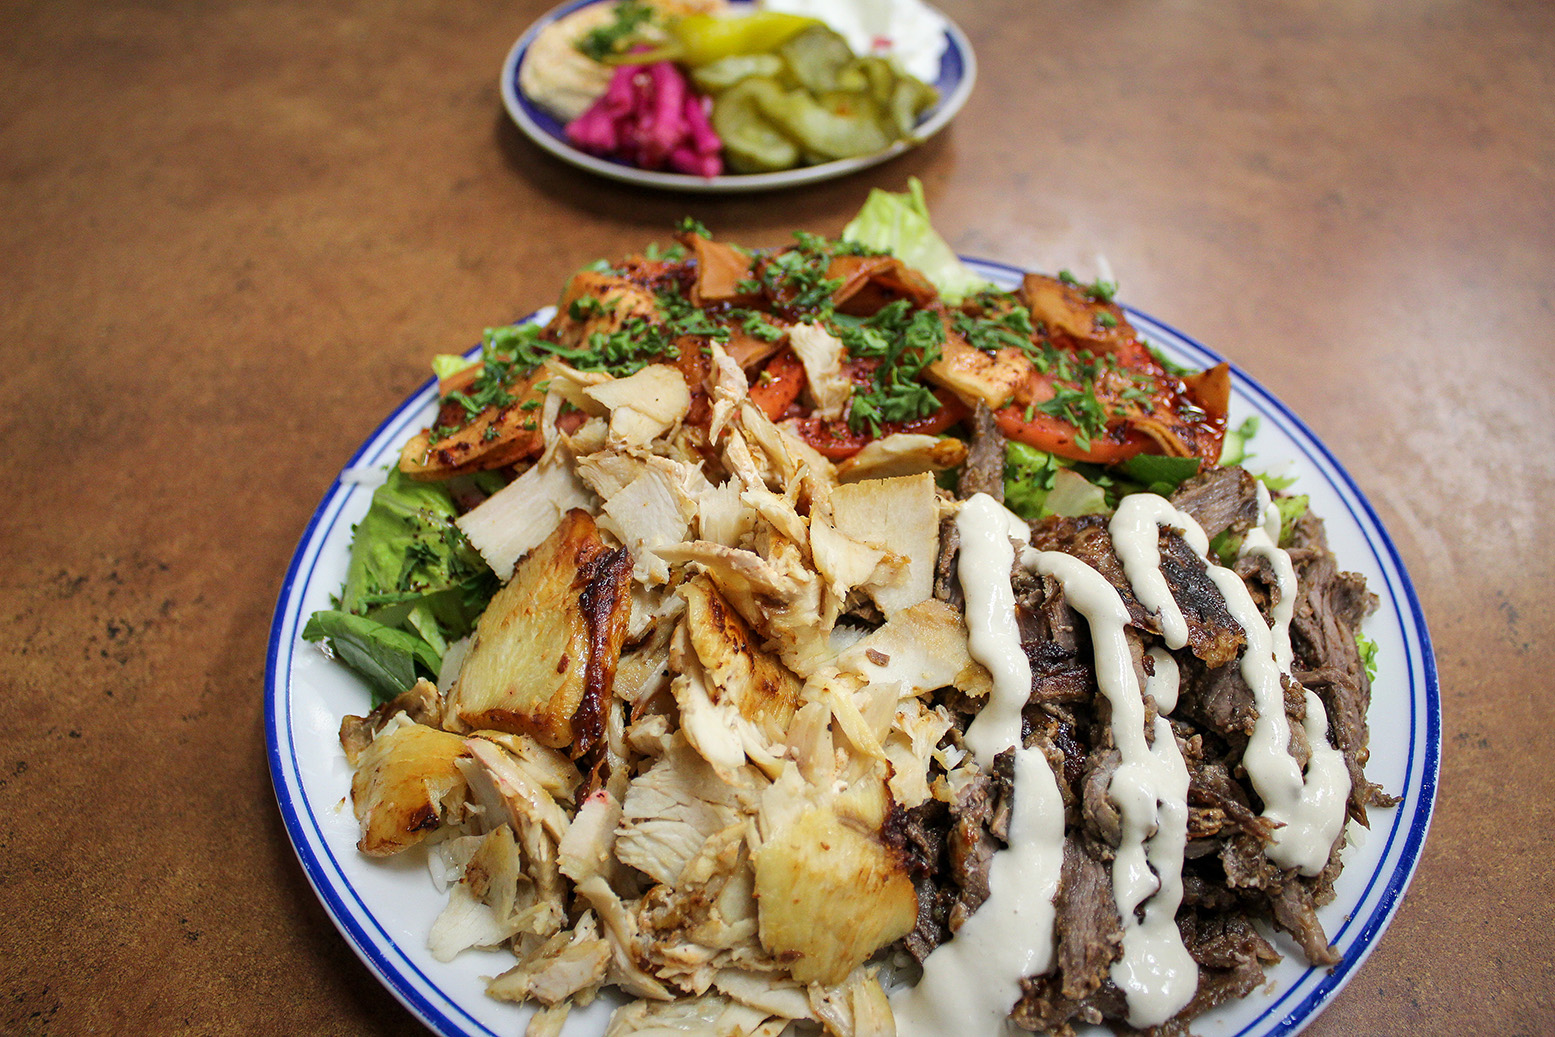 Photo of chicken and beef shawarma plate from Shawarma Palace